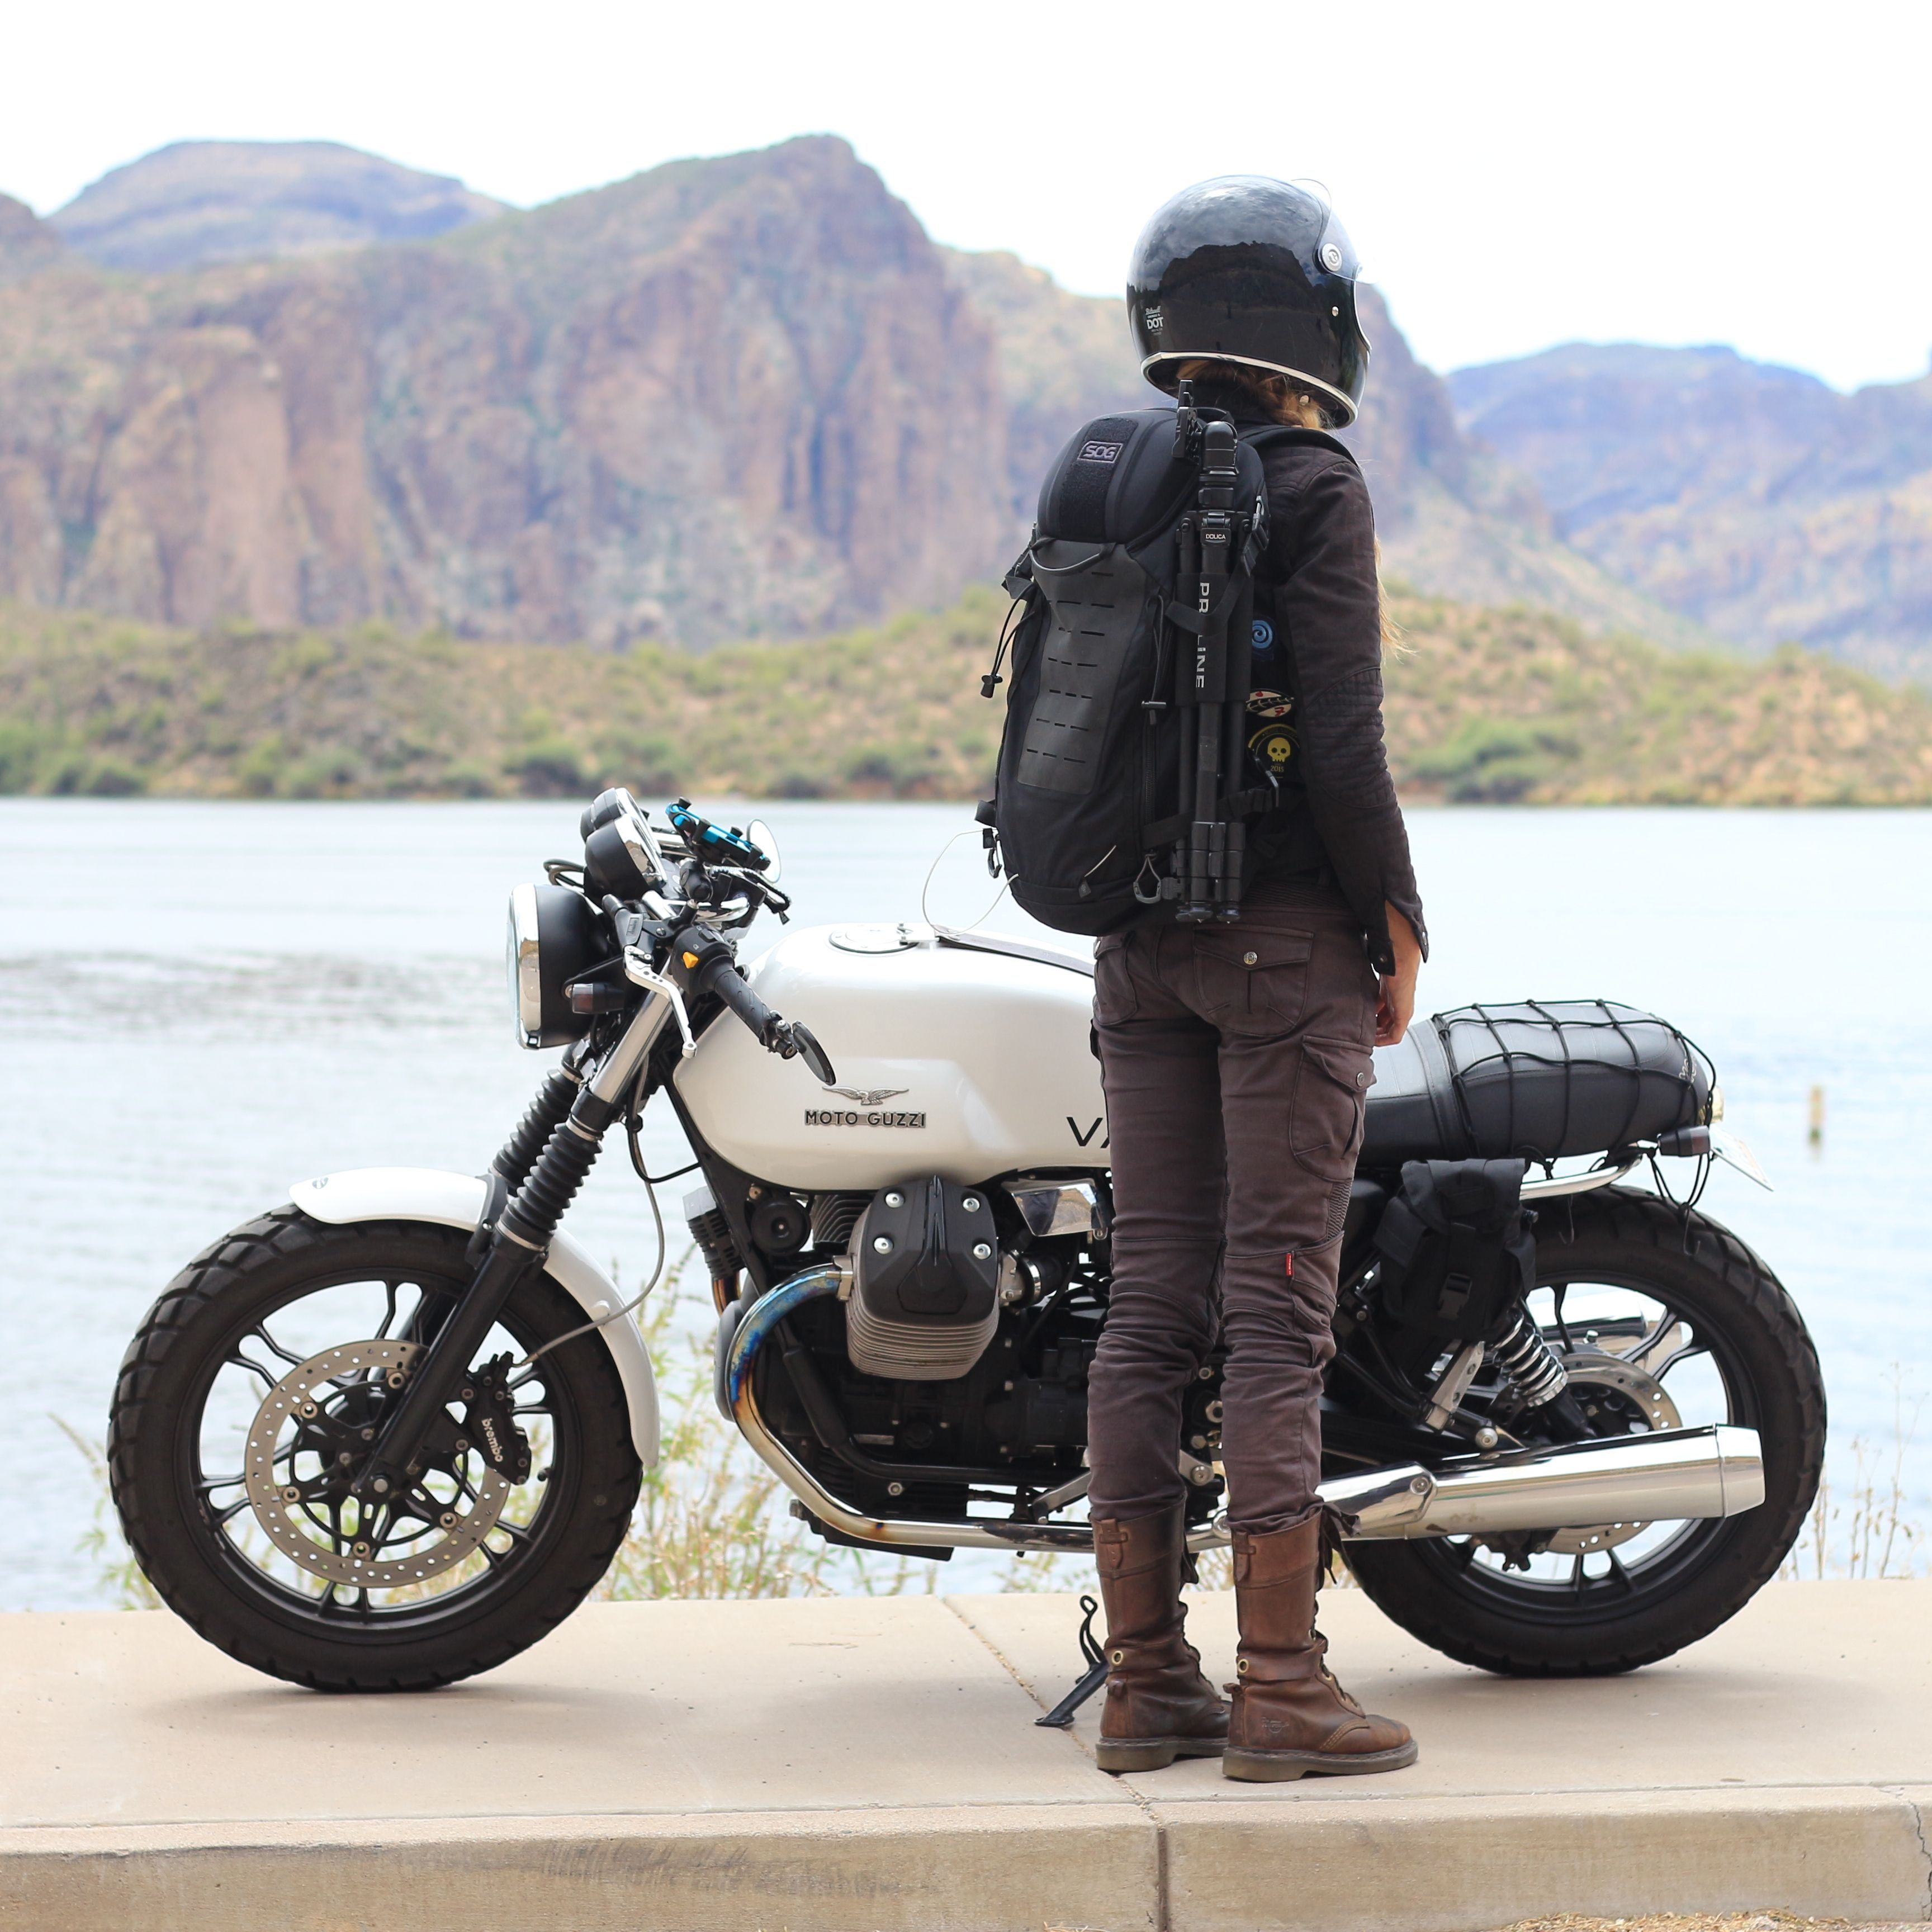 Scout 24 Motorcycle Culture Moto Guzzi Cafe Racer Motorcycle Travel